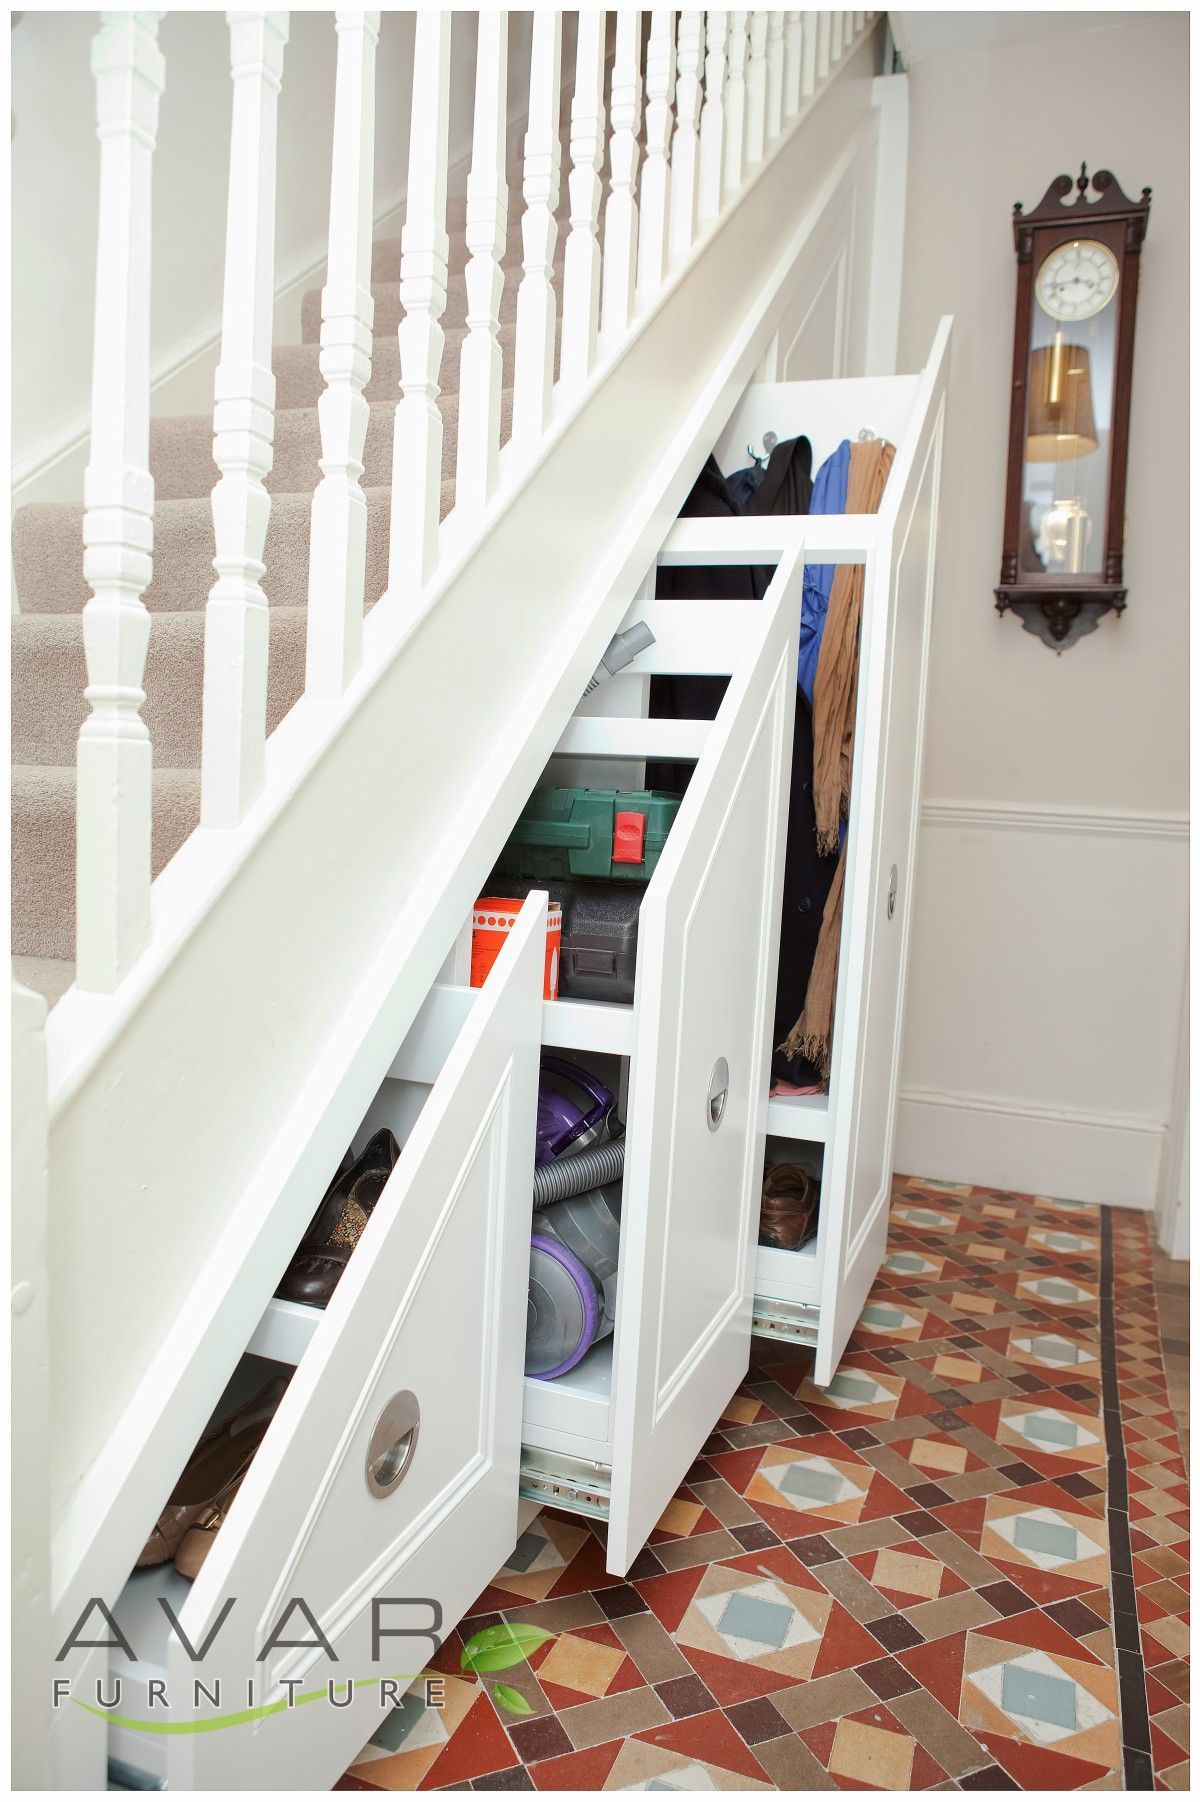 06 3 Pull Outs For Storage Under Stairs From Avar